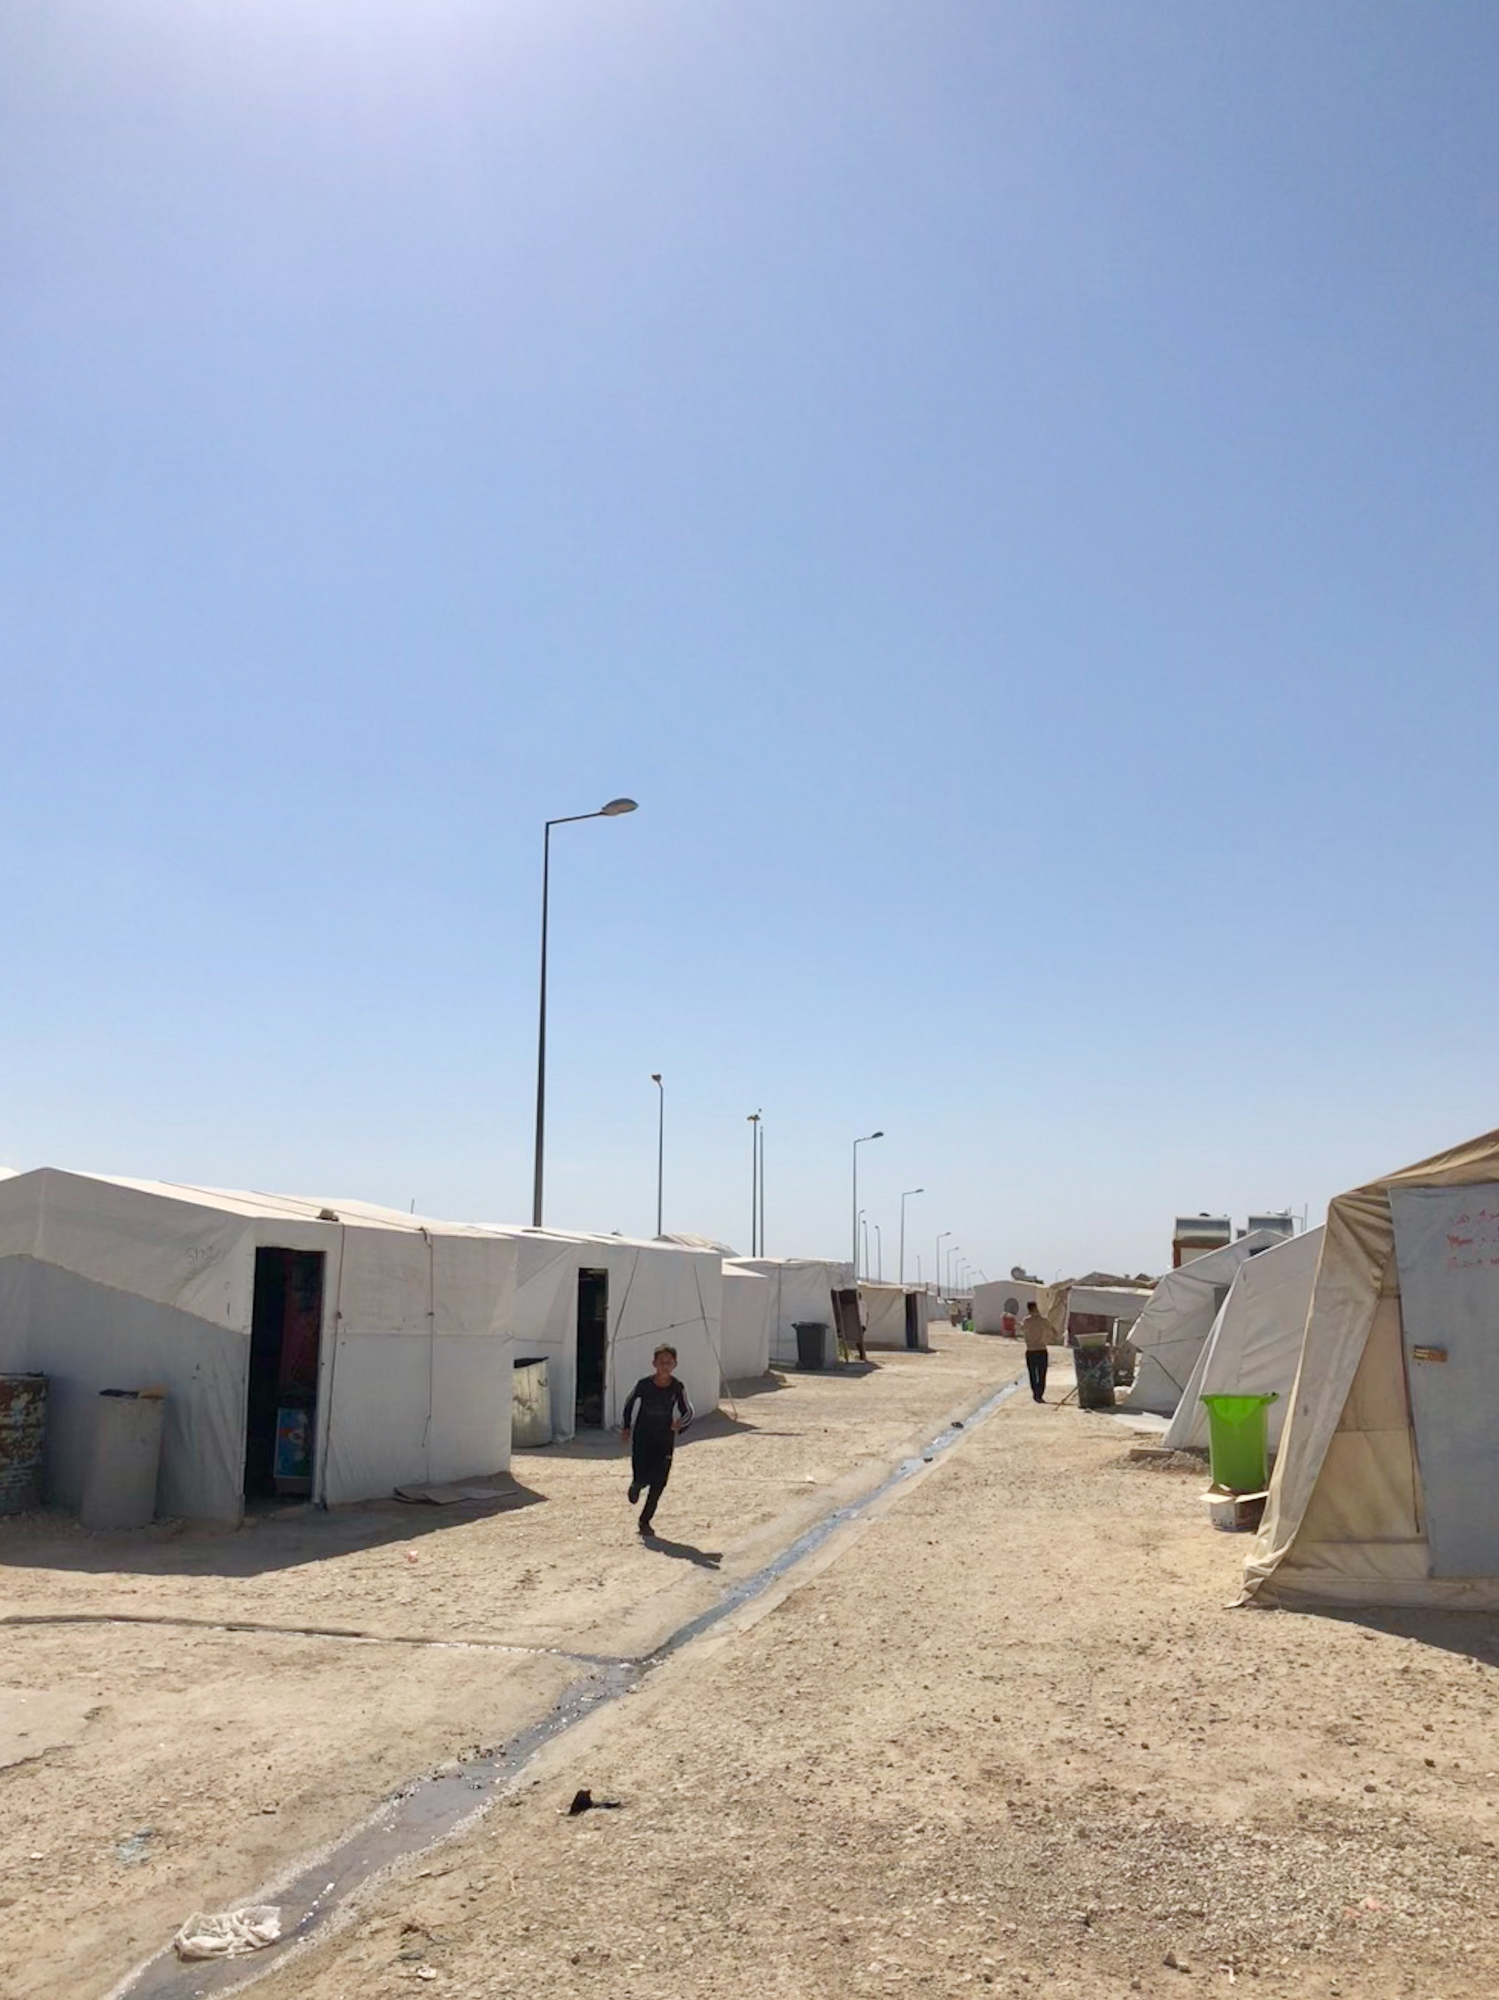 Official refugees camp near Dohuk